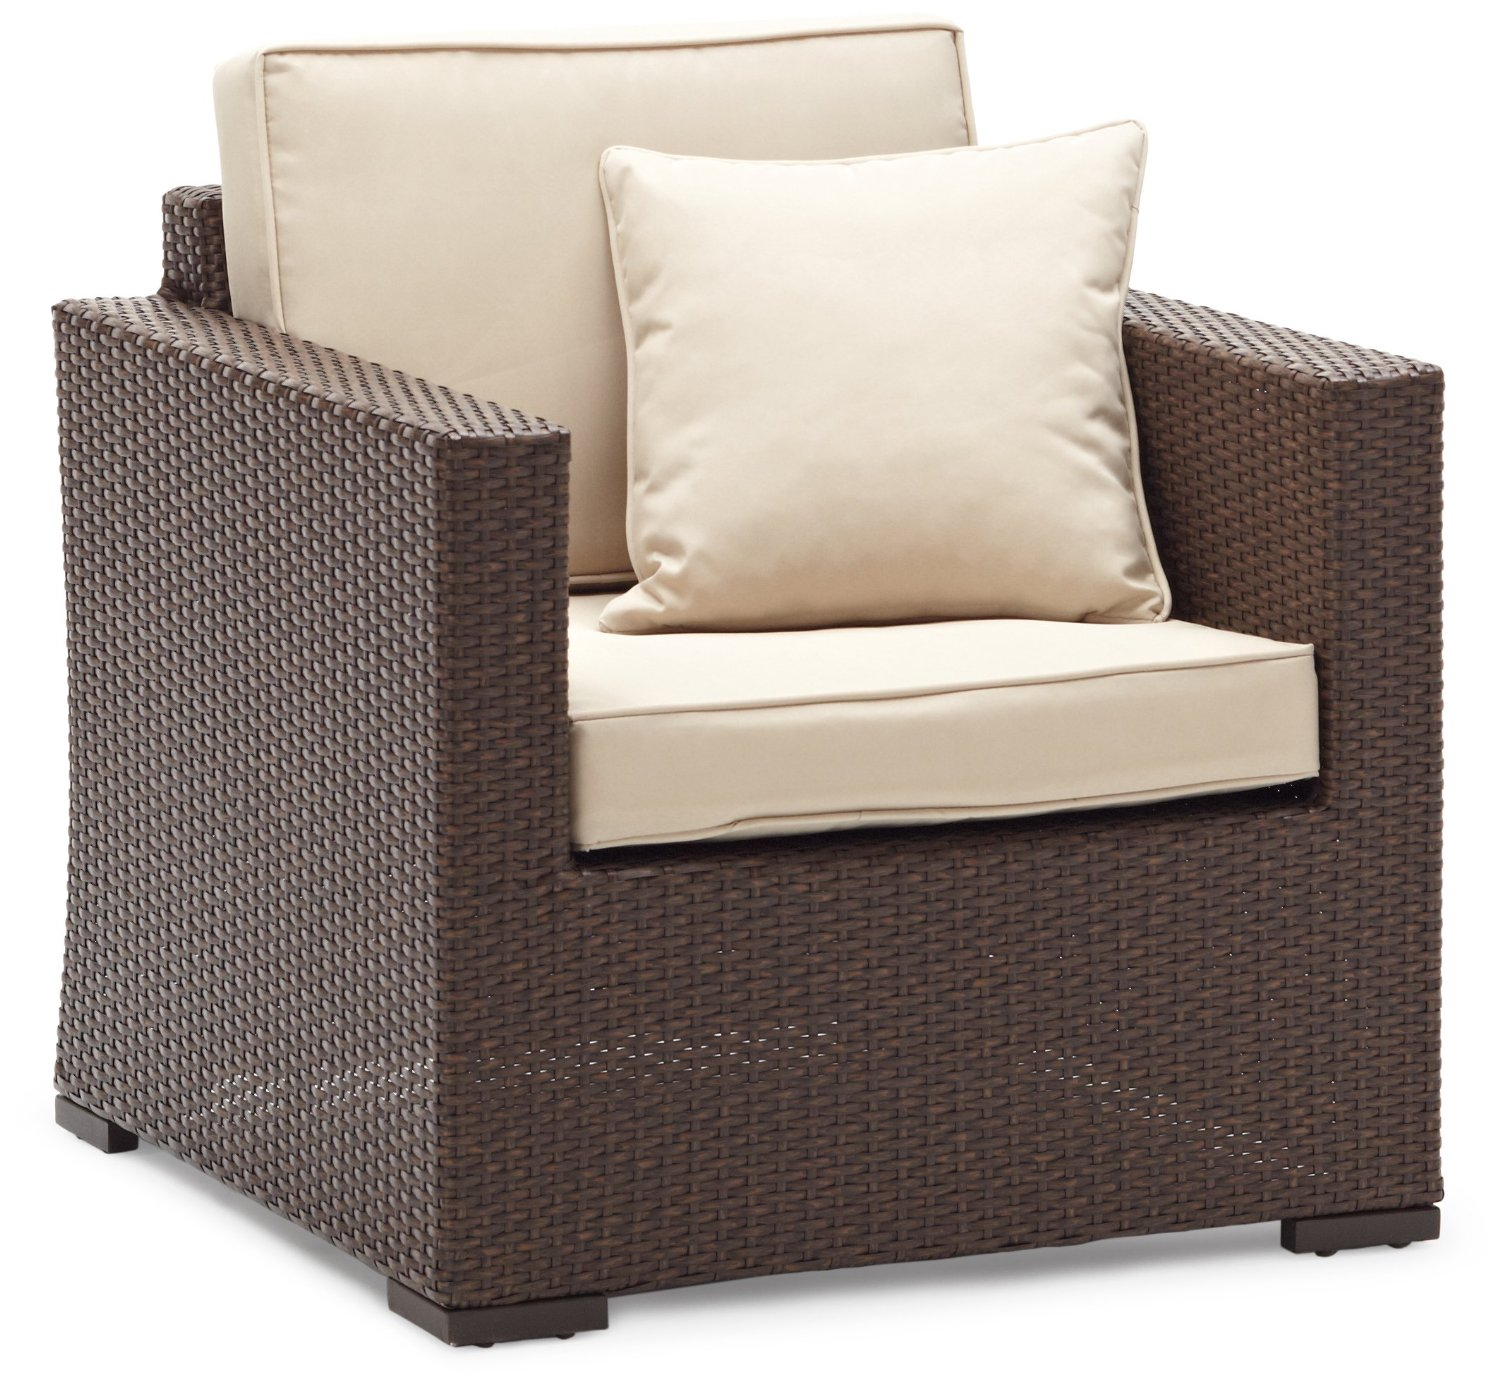 On a front porch or backyard patio the wicker chair adds welcoming charm when gathering with family entertaining with friends or simply